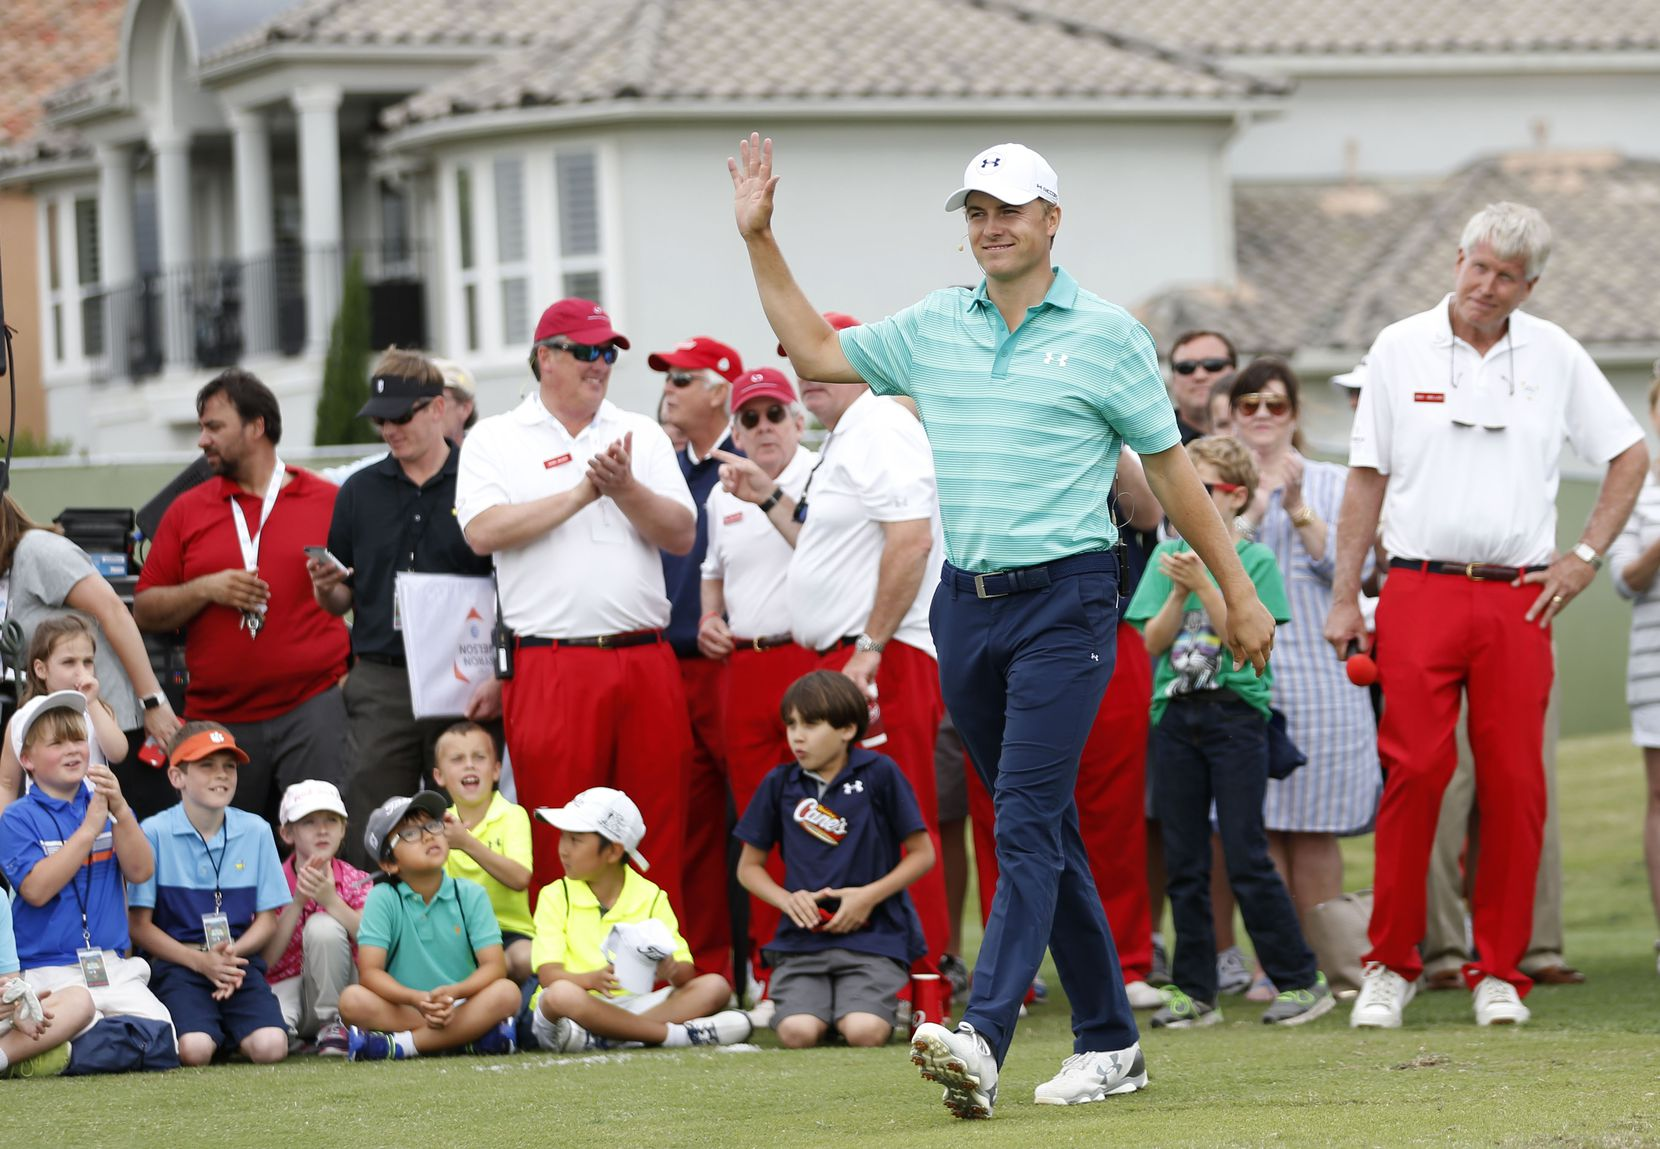 Jordan Spieth waves to the crowd as he is introduced  during a youth golf clinic at TPC Four Seasons in Irving before last year's Byron Nelson tournament. Behind him are members of the Dallas Salesmanship Club, wearing their trademark red pants.